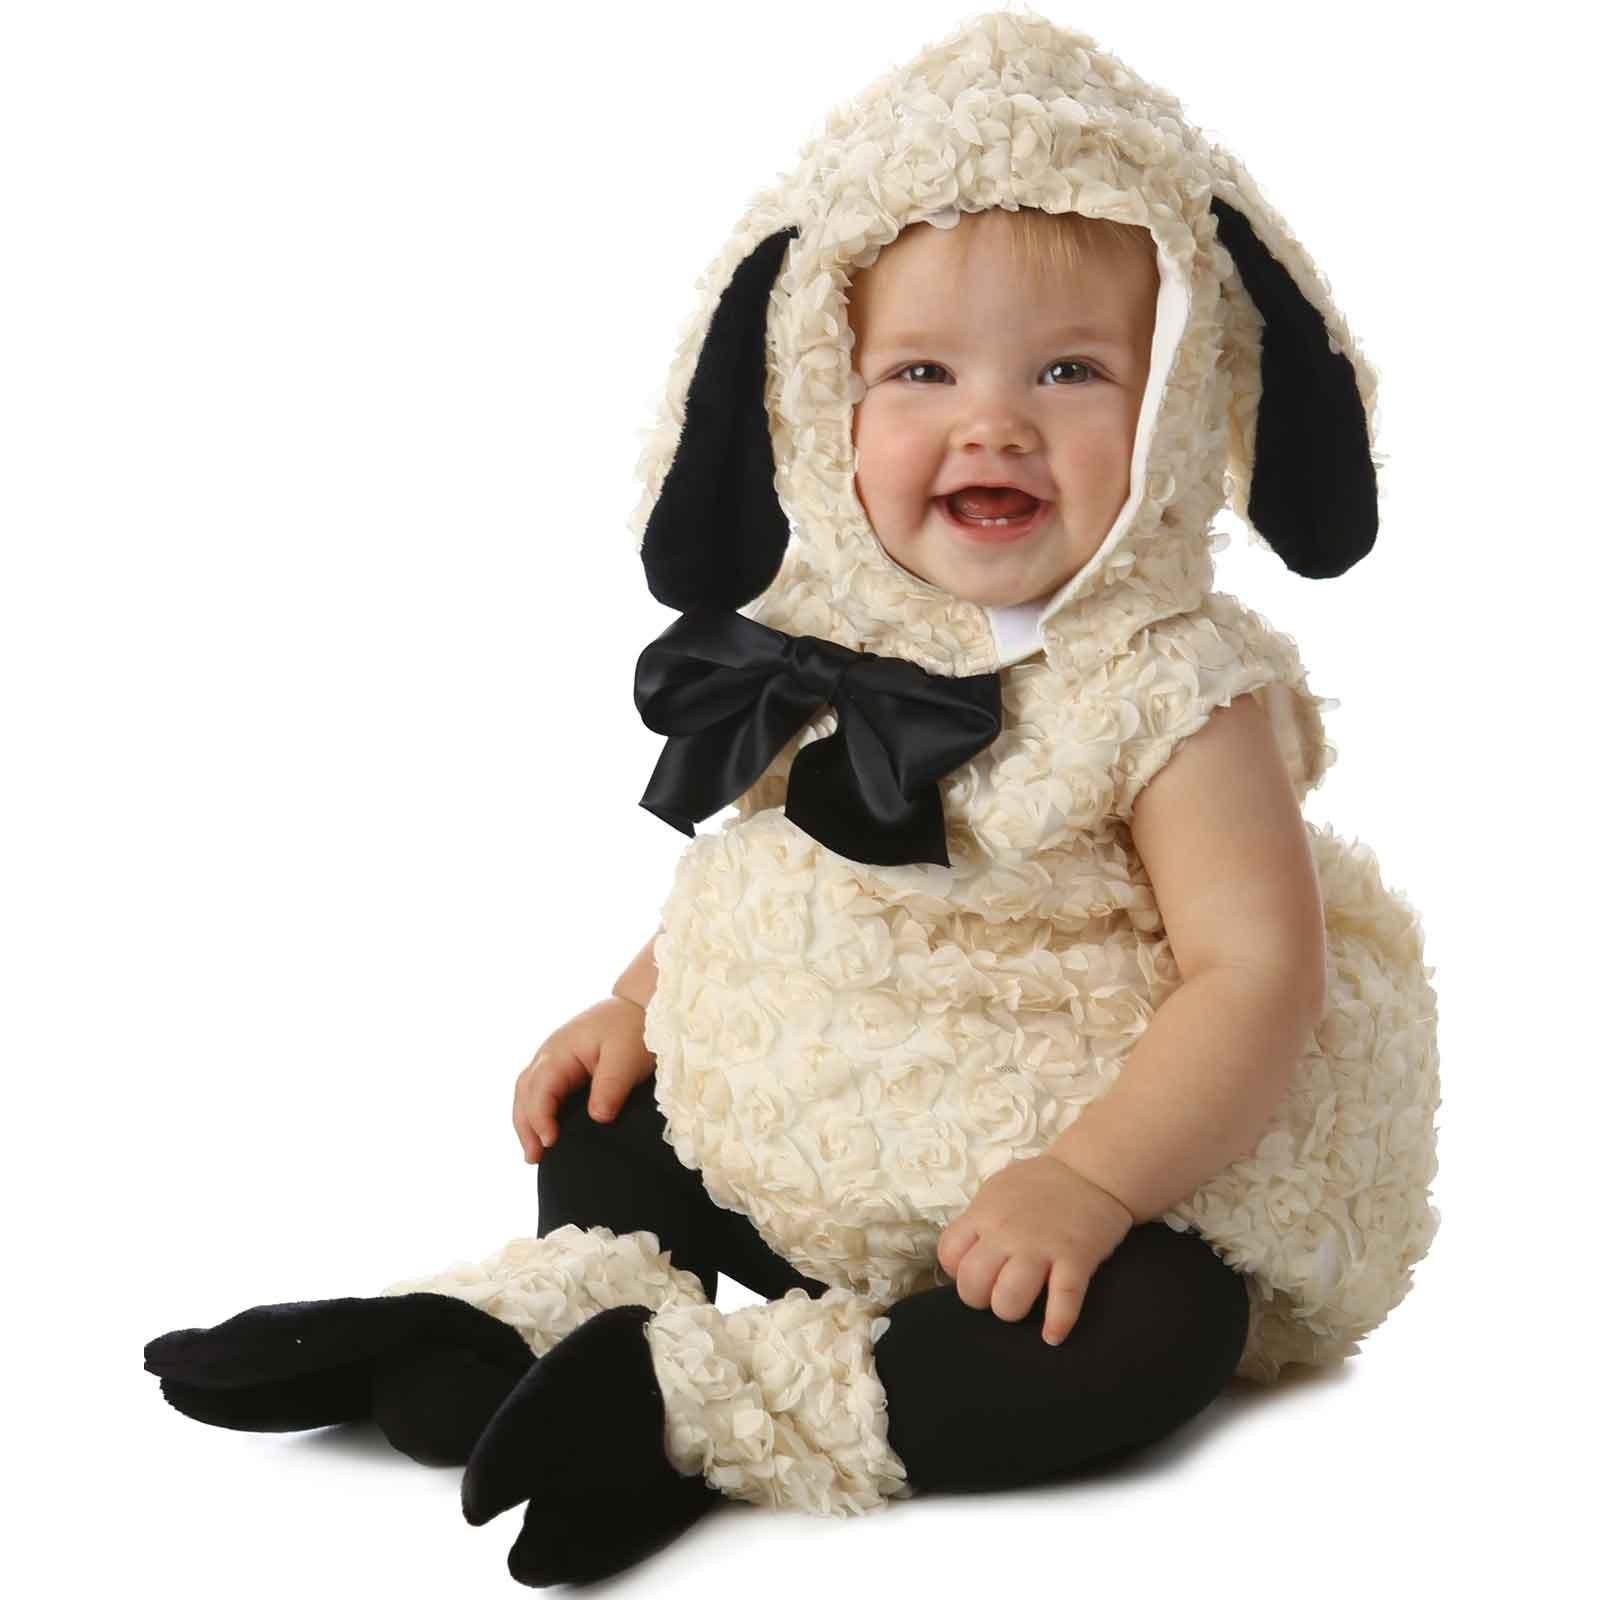 vintage-lamb-infant-toddler-costume-bc-806556 5 Most Wanted Halloween Beanie Babies Costumes & What To Consider